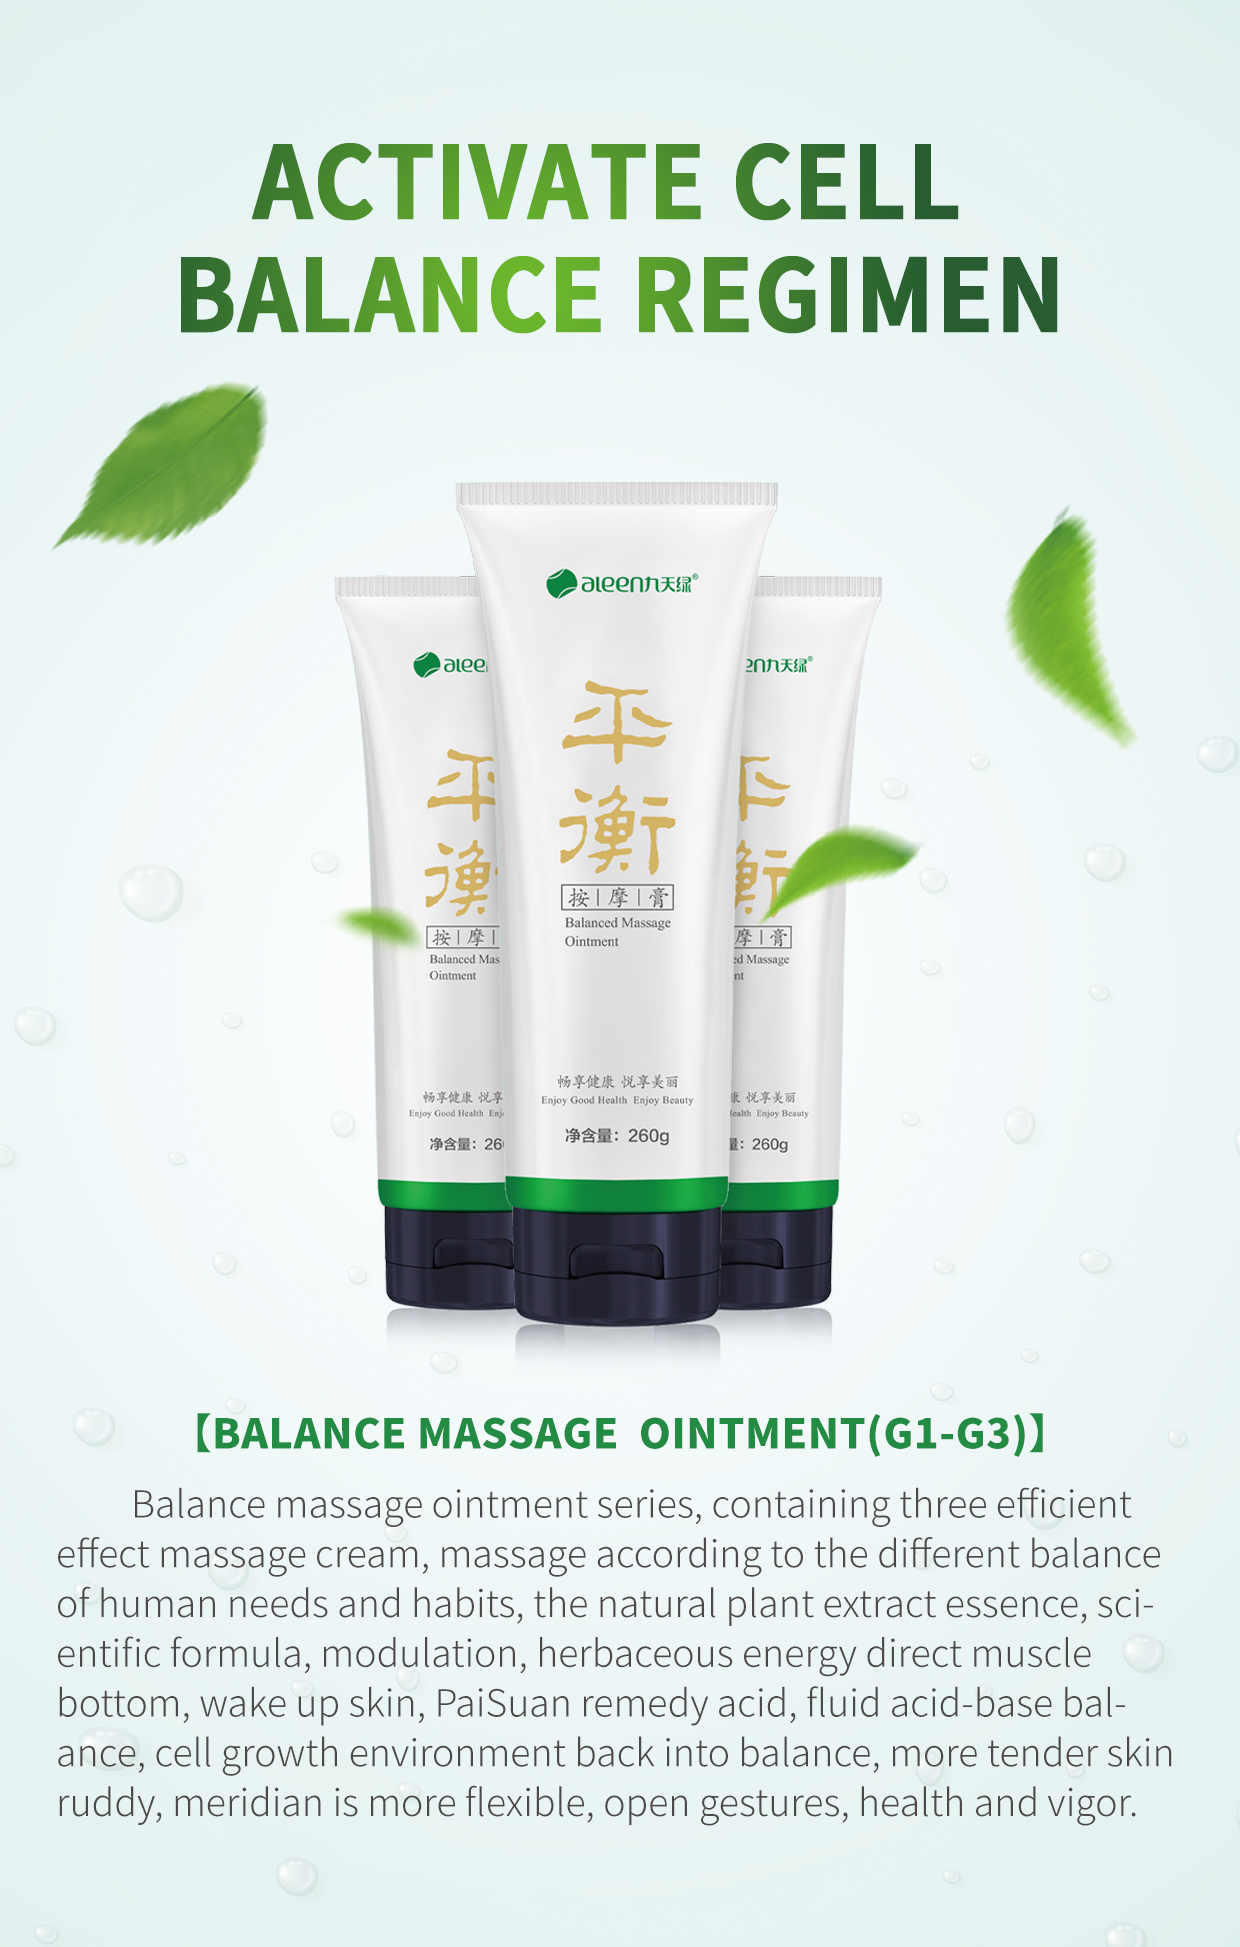 Balance Massage Ointment